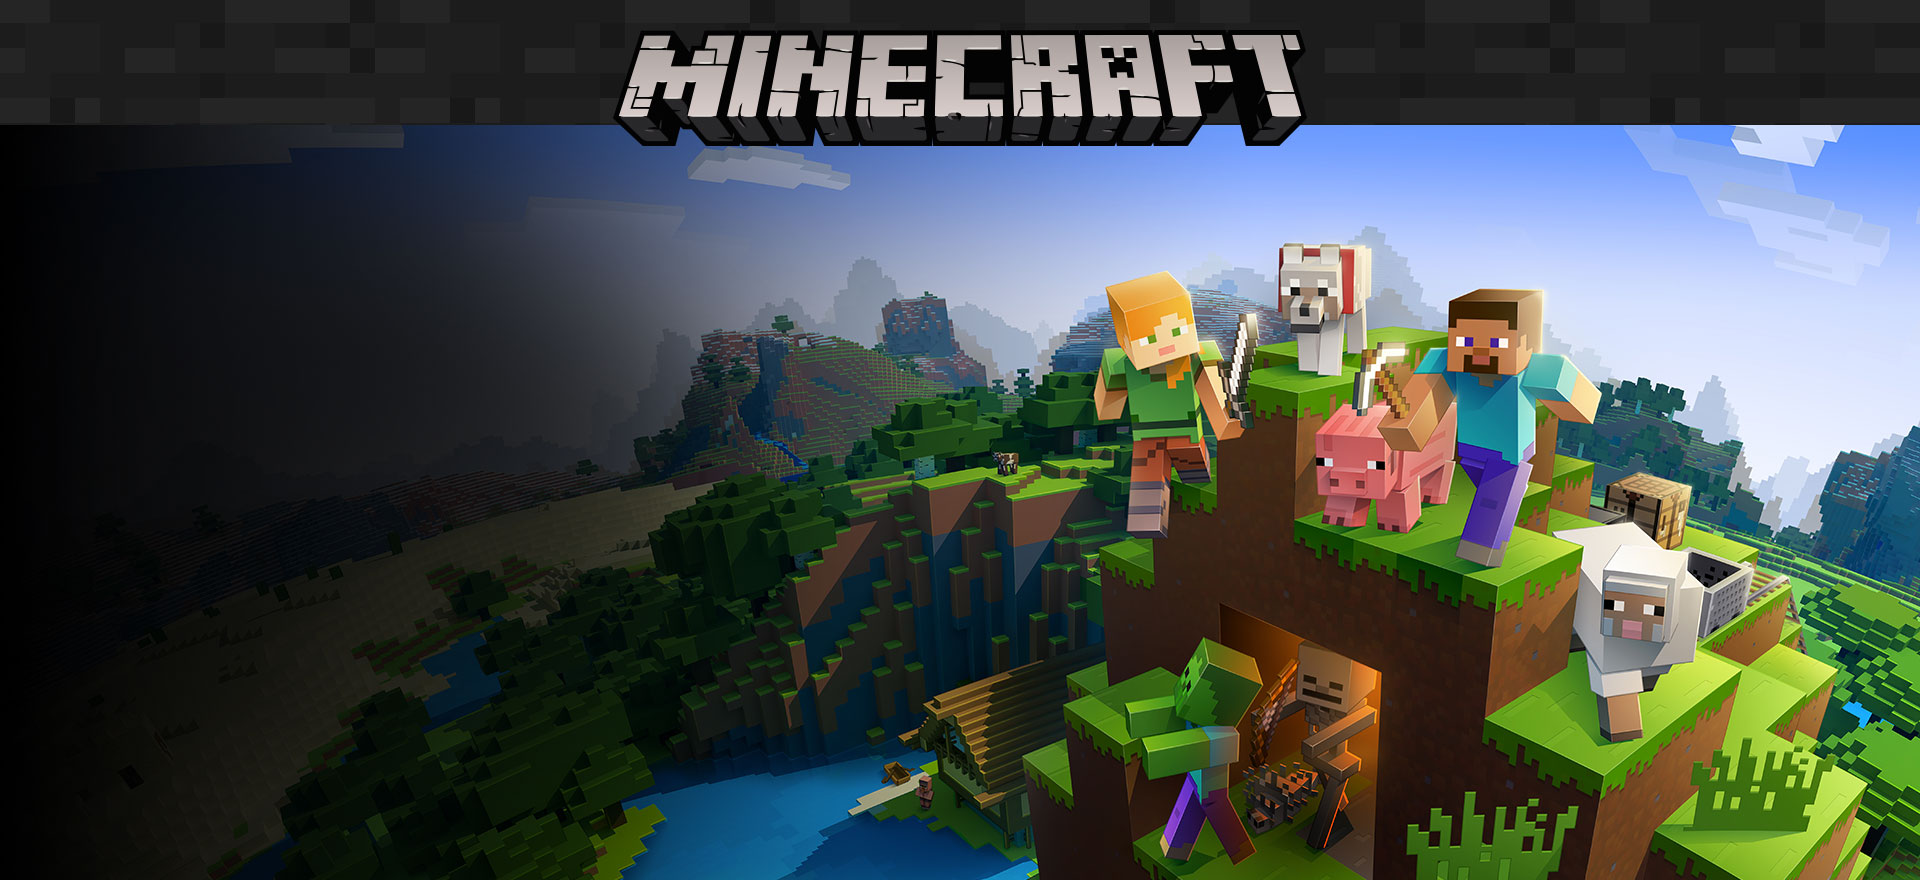 Read more about the article Minecraft: Editor de personagens